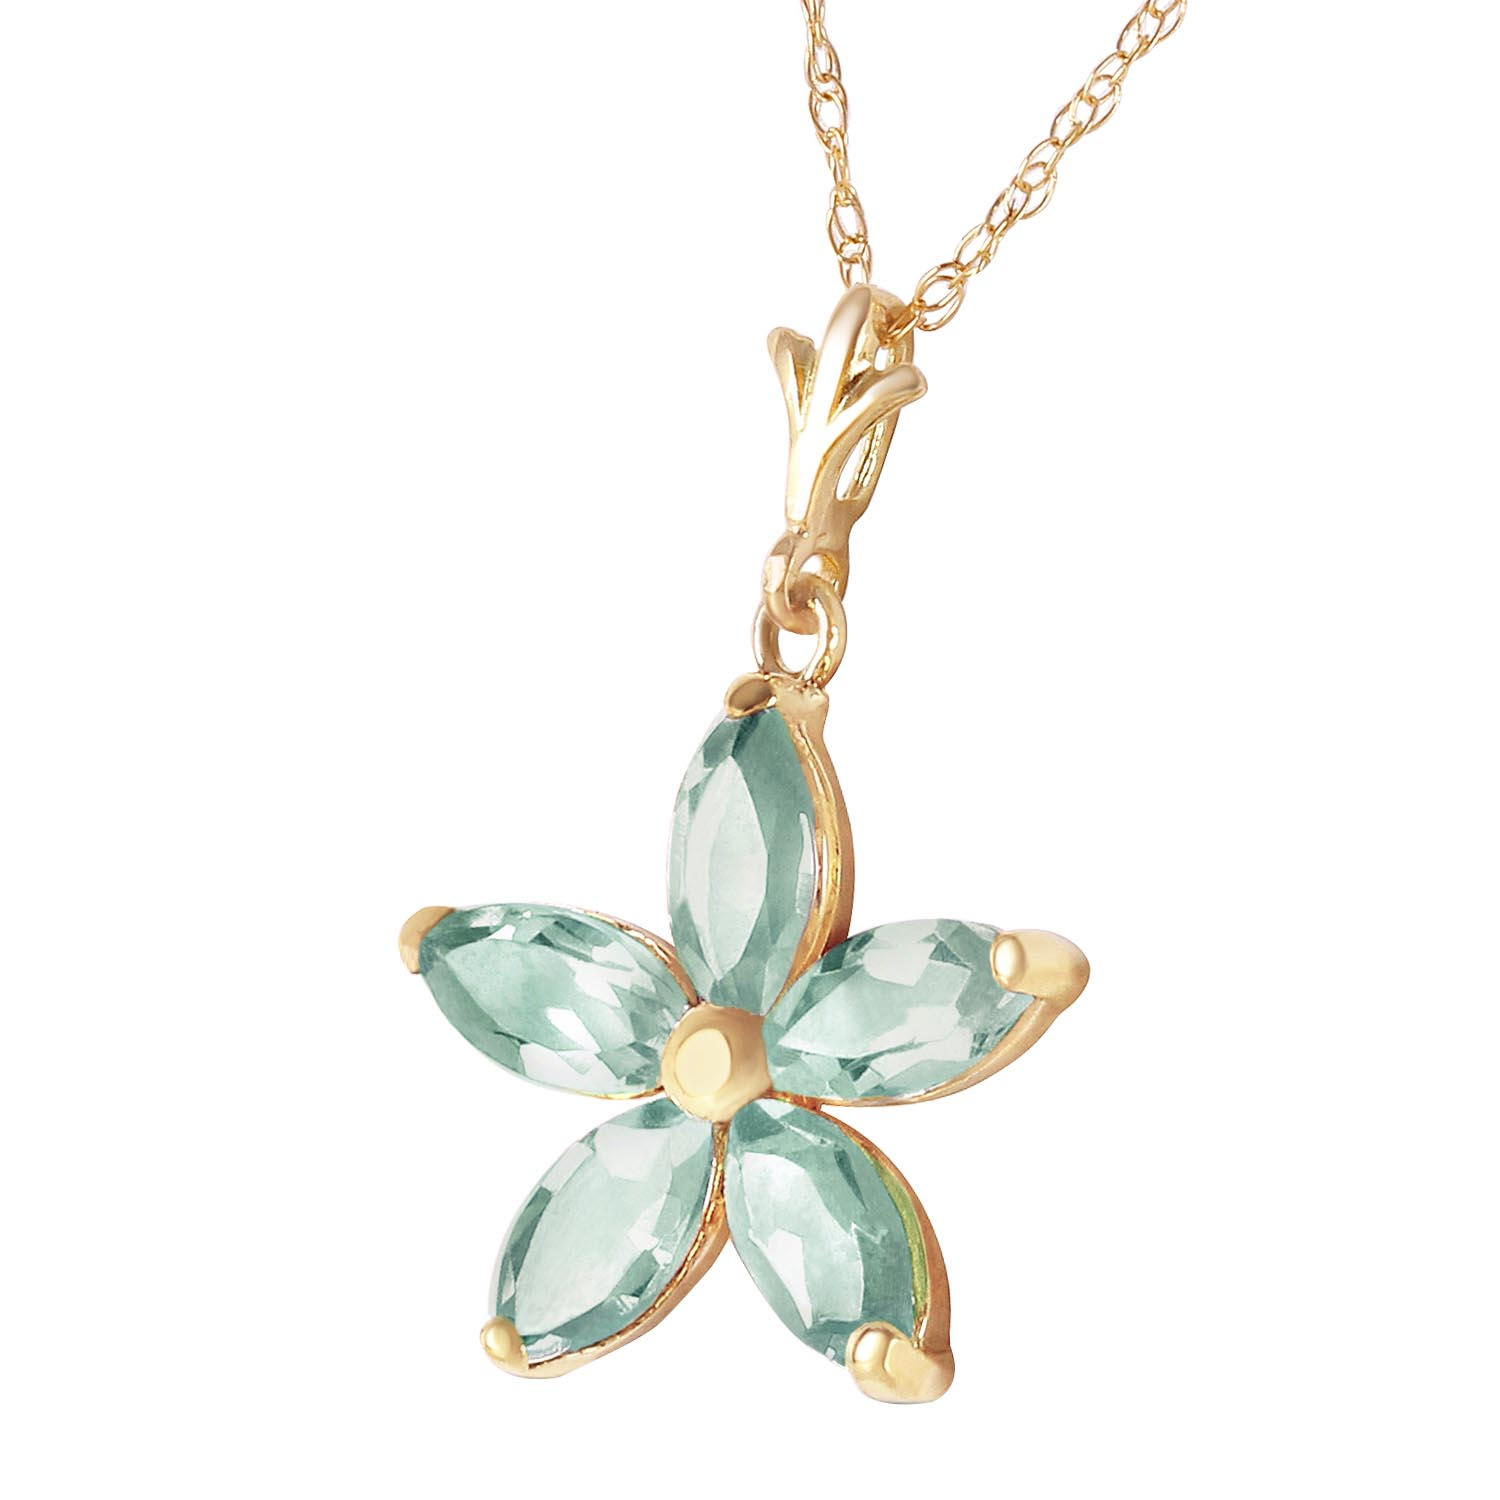 Green Amethyst Flower Star Pendant Necklace 1.4ctw in 14K Gold